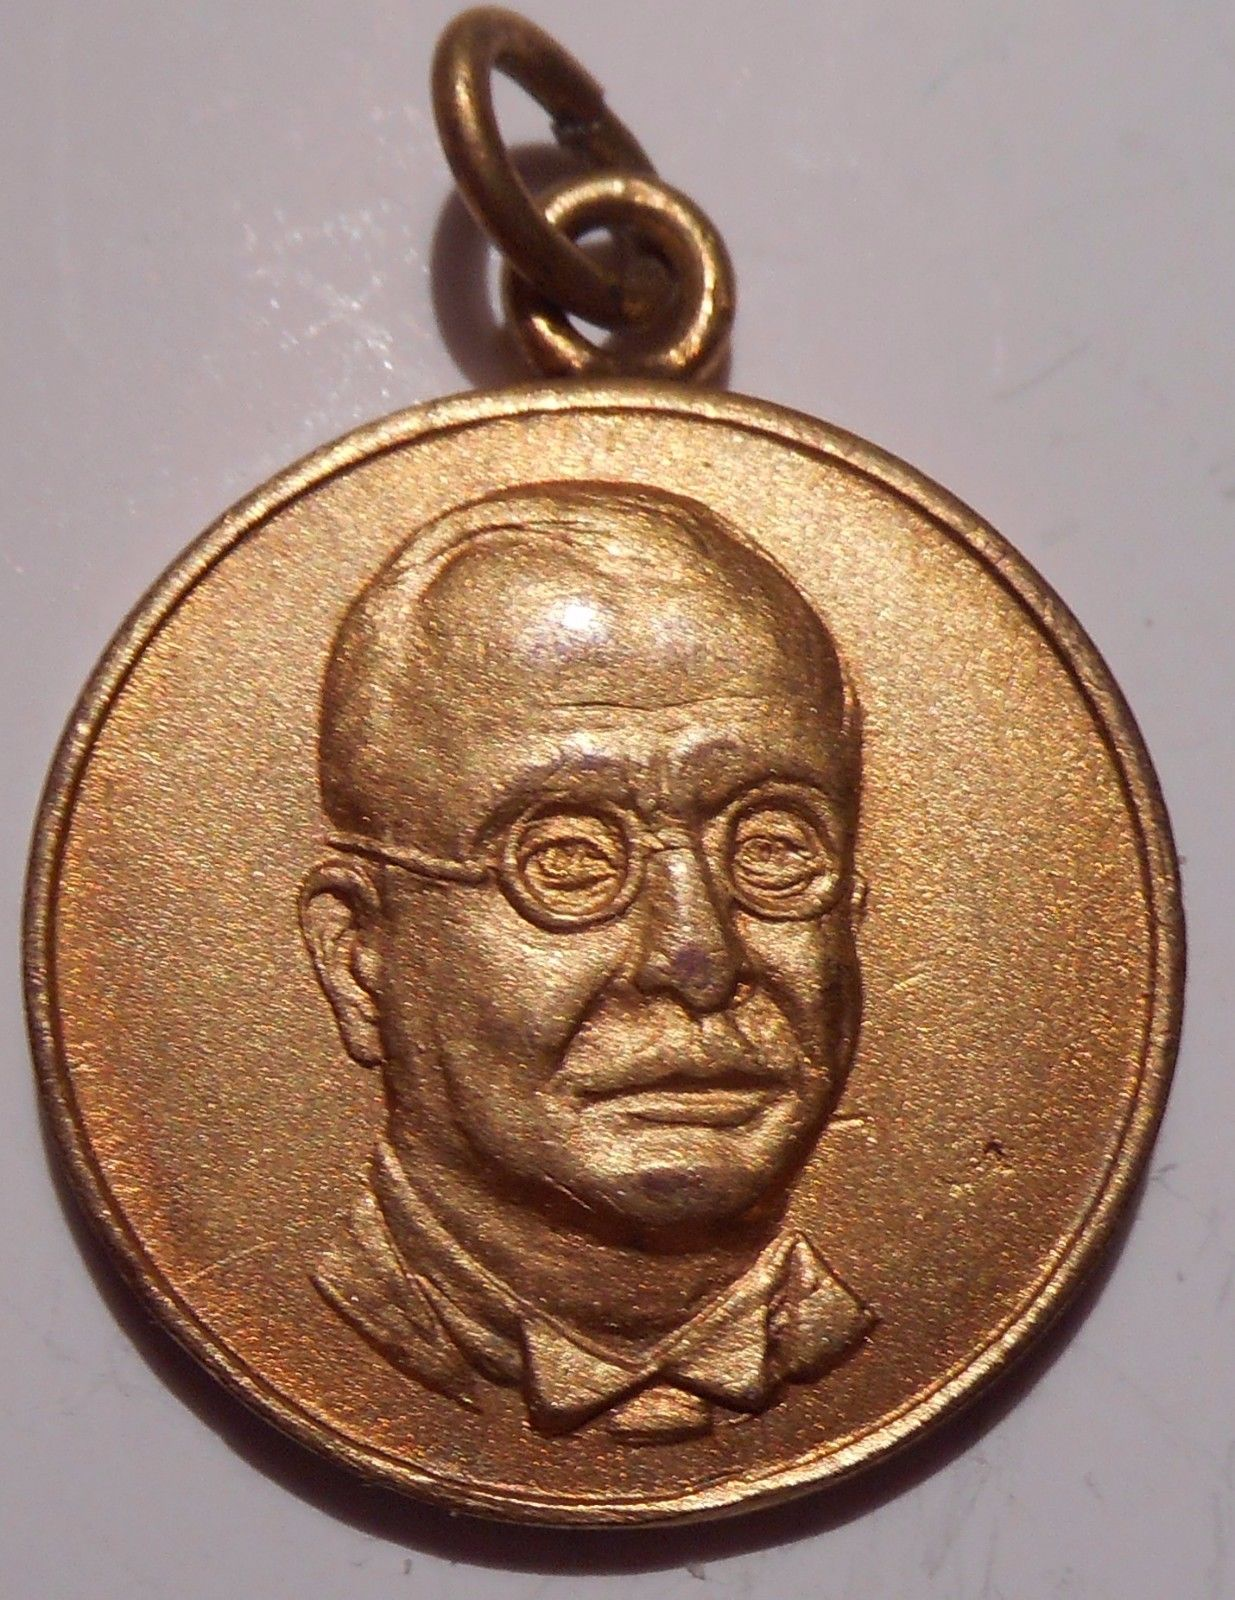 A collection of medals from the Metaxas regime | Metaxas Project